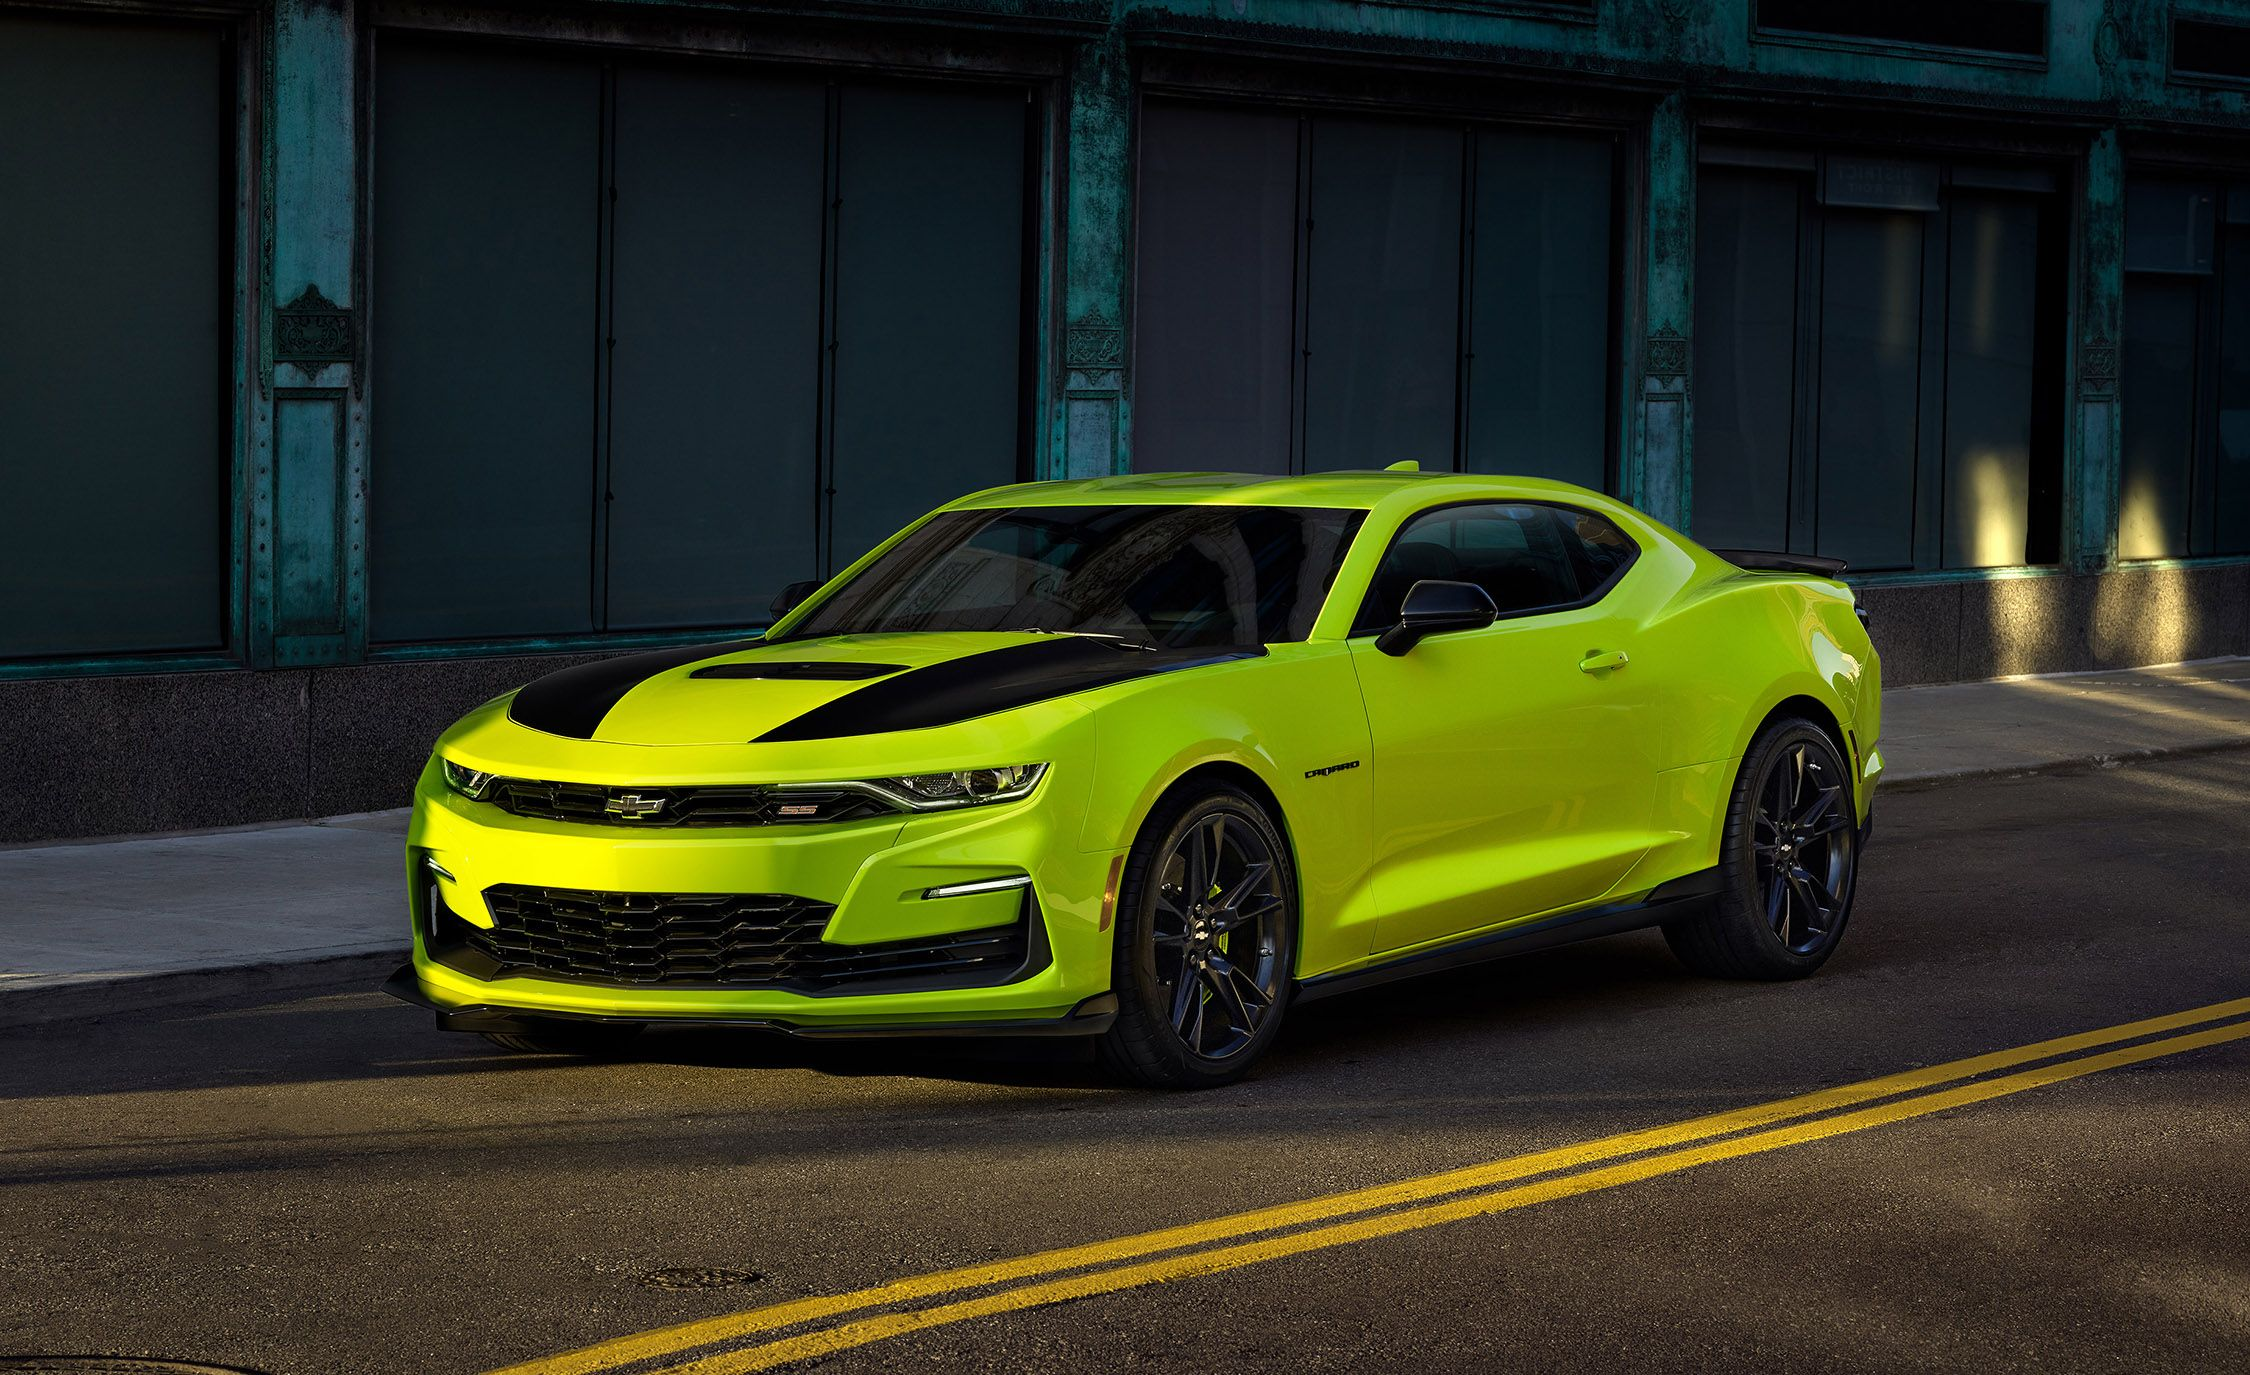 2019 Chevrolet Camaro Adds Extreme Yellow Color Preview